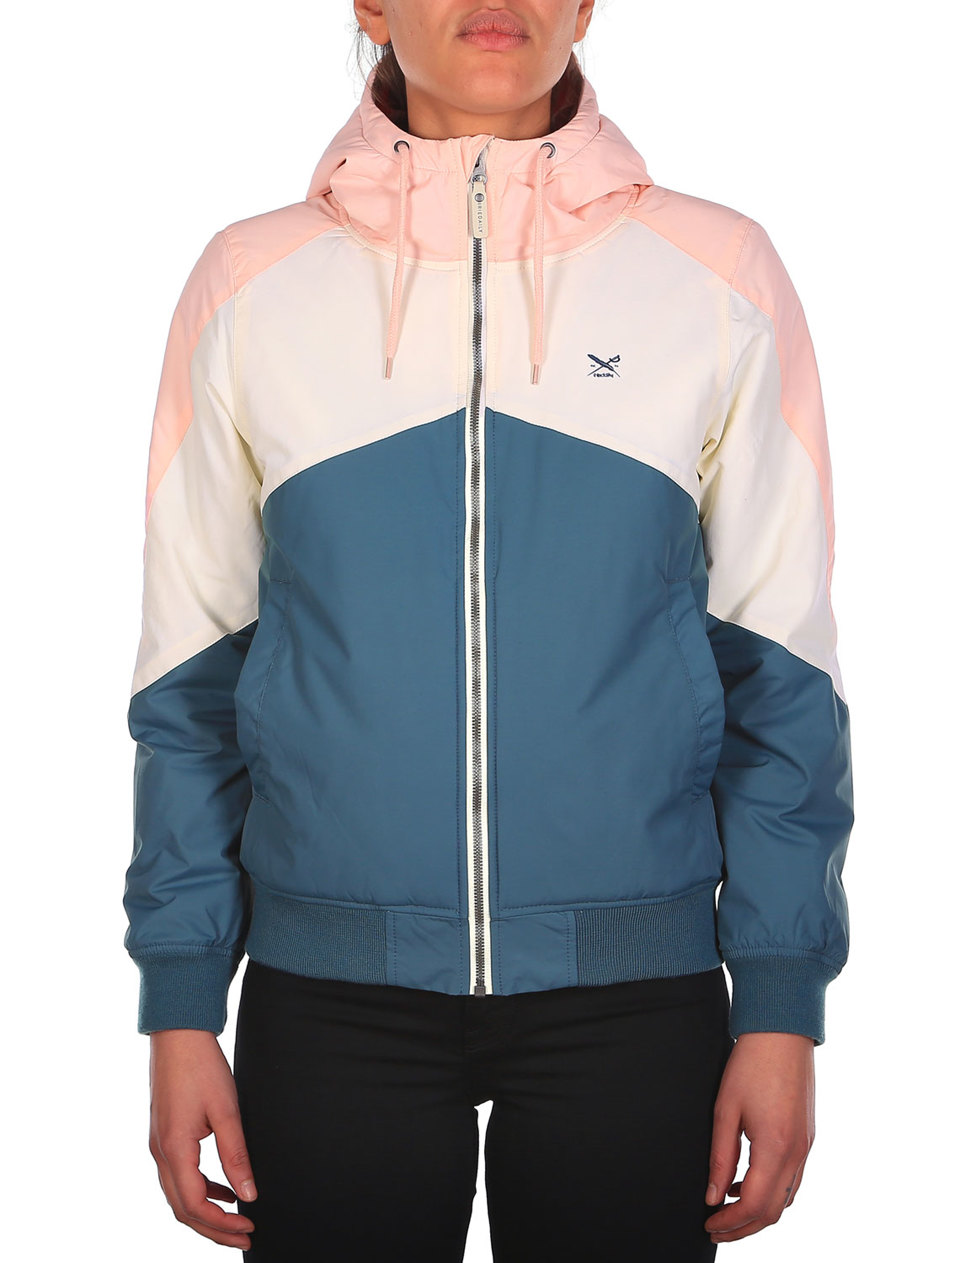 Tri Jacketsteelblue Tri Colore Jacketsteelblue Colore Colore Tri Jacketsteelblue UpSzVM